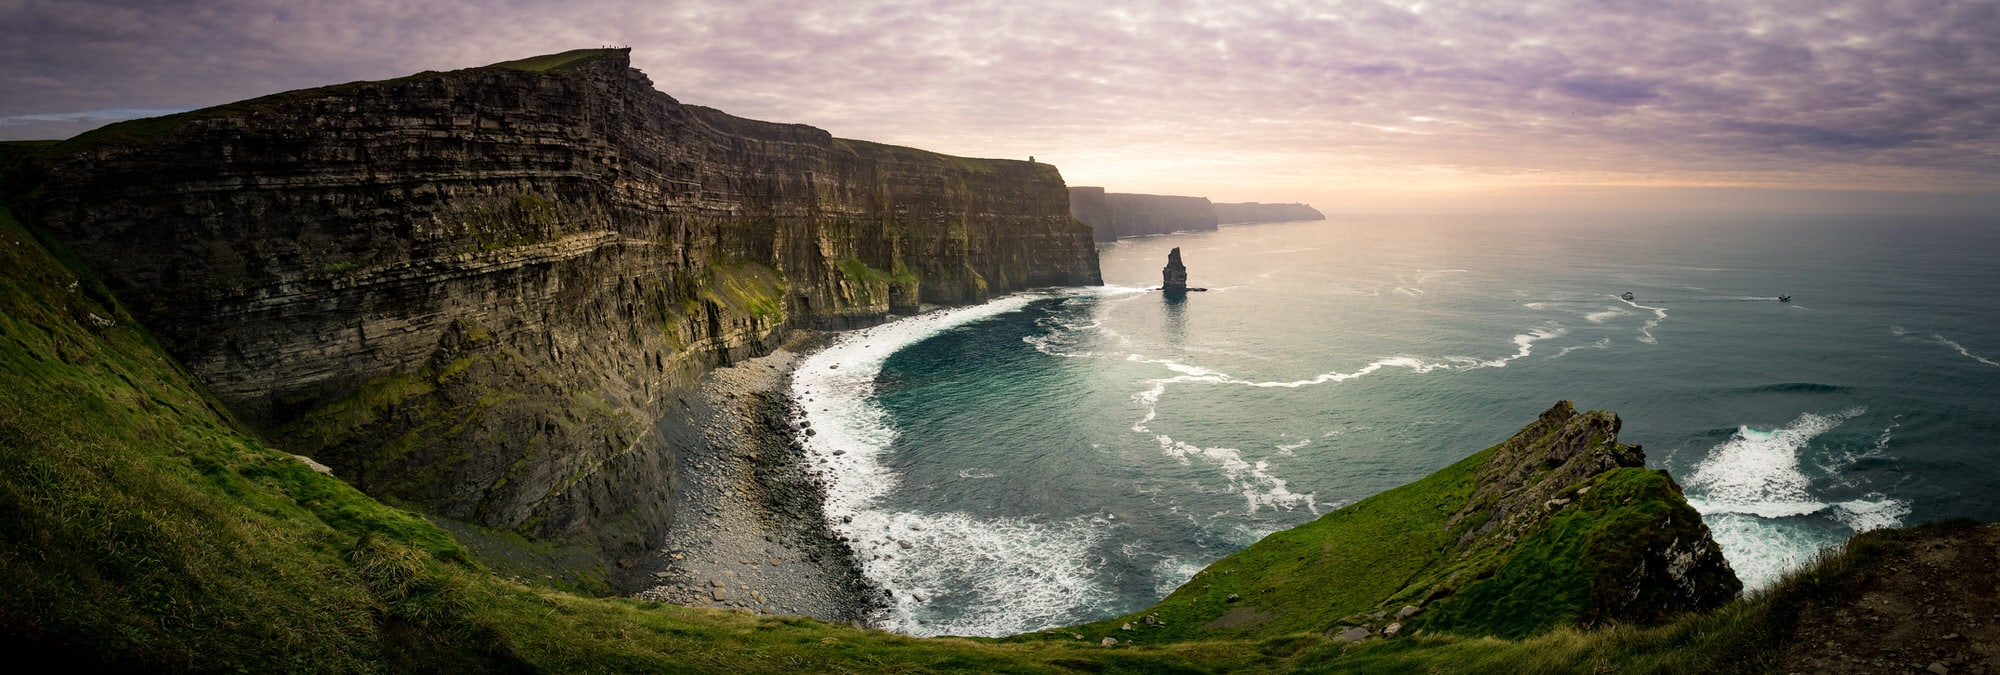 airbnb ireland cliffs of moher